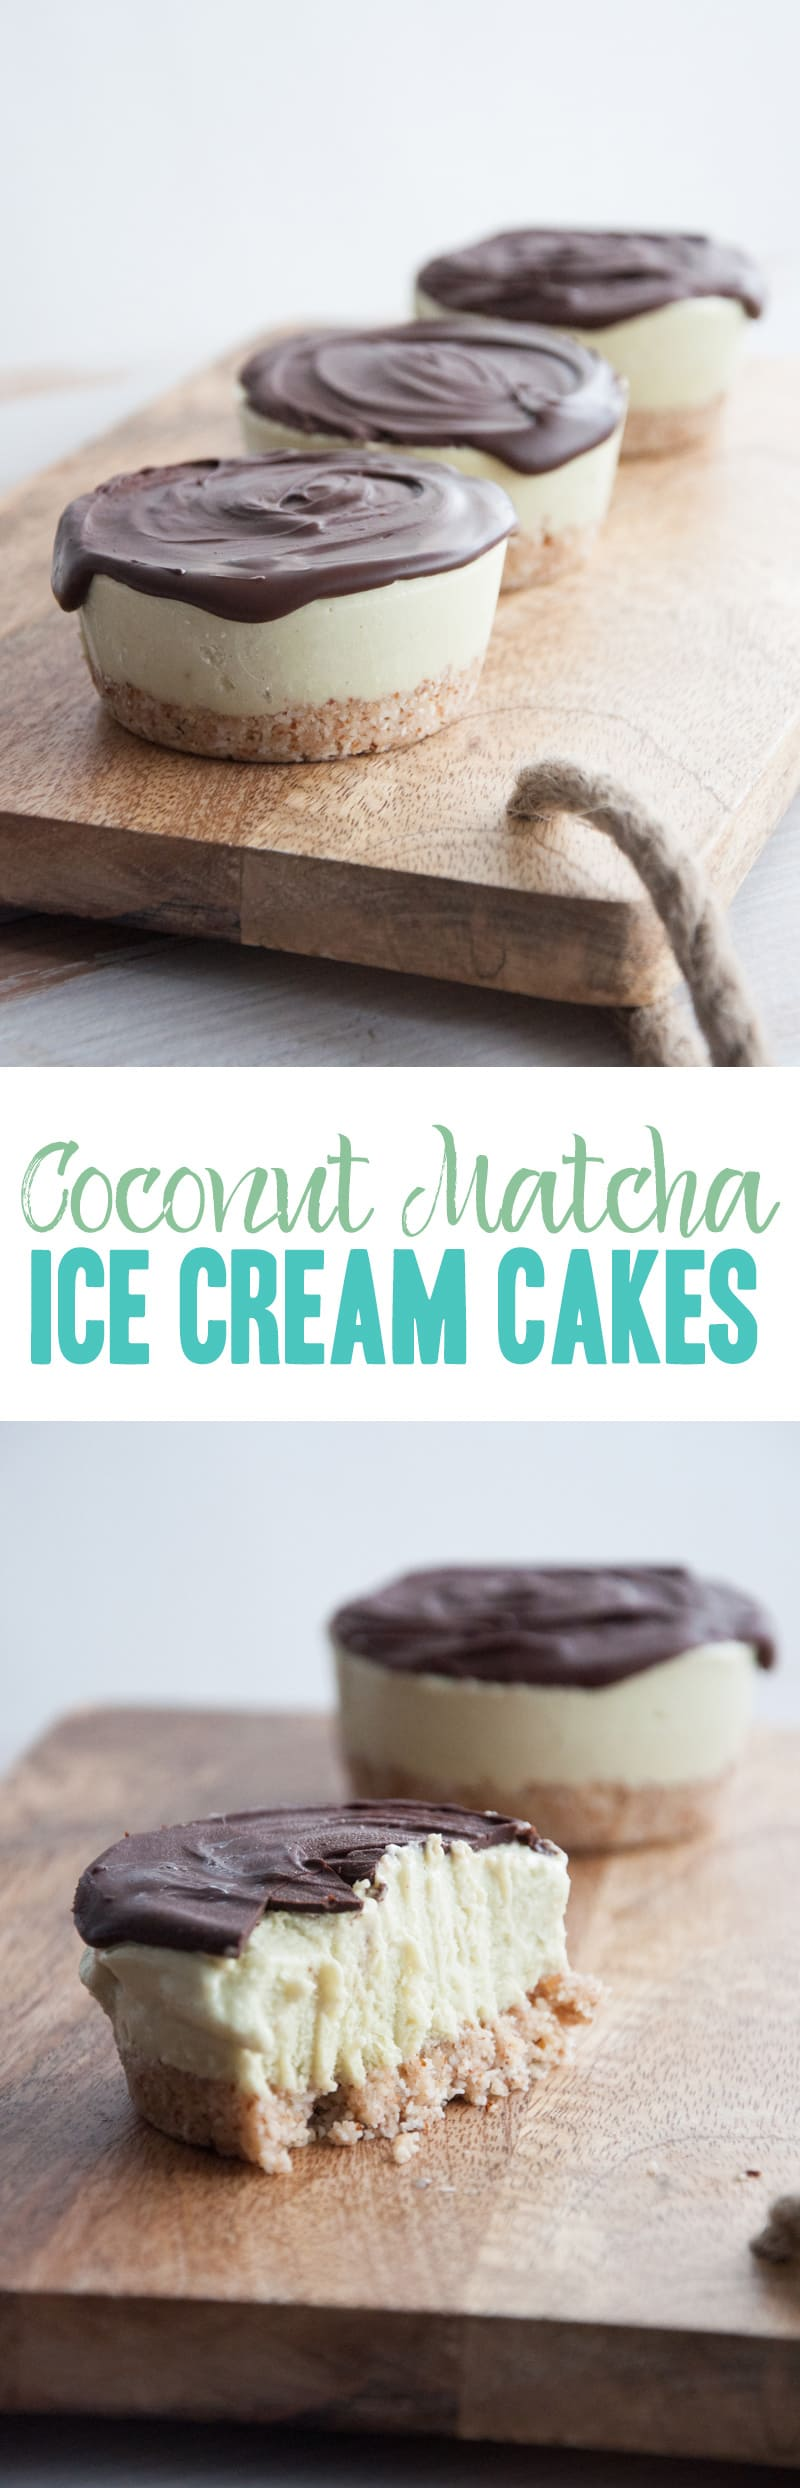 Vegan Coconut Matcha Ice Cream Cakes | ElephantasticVegan.com